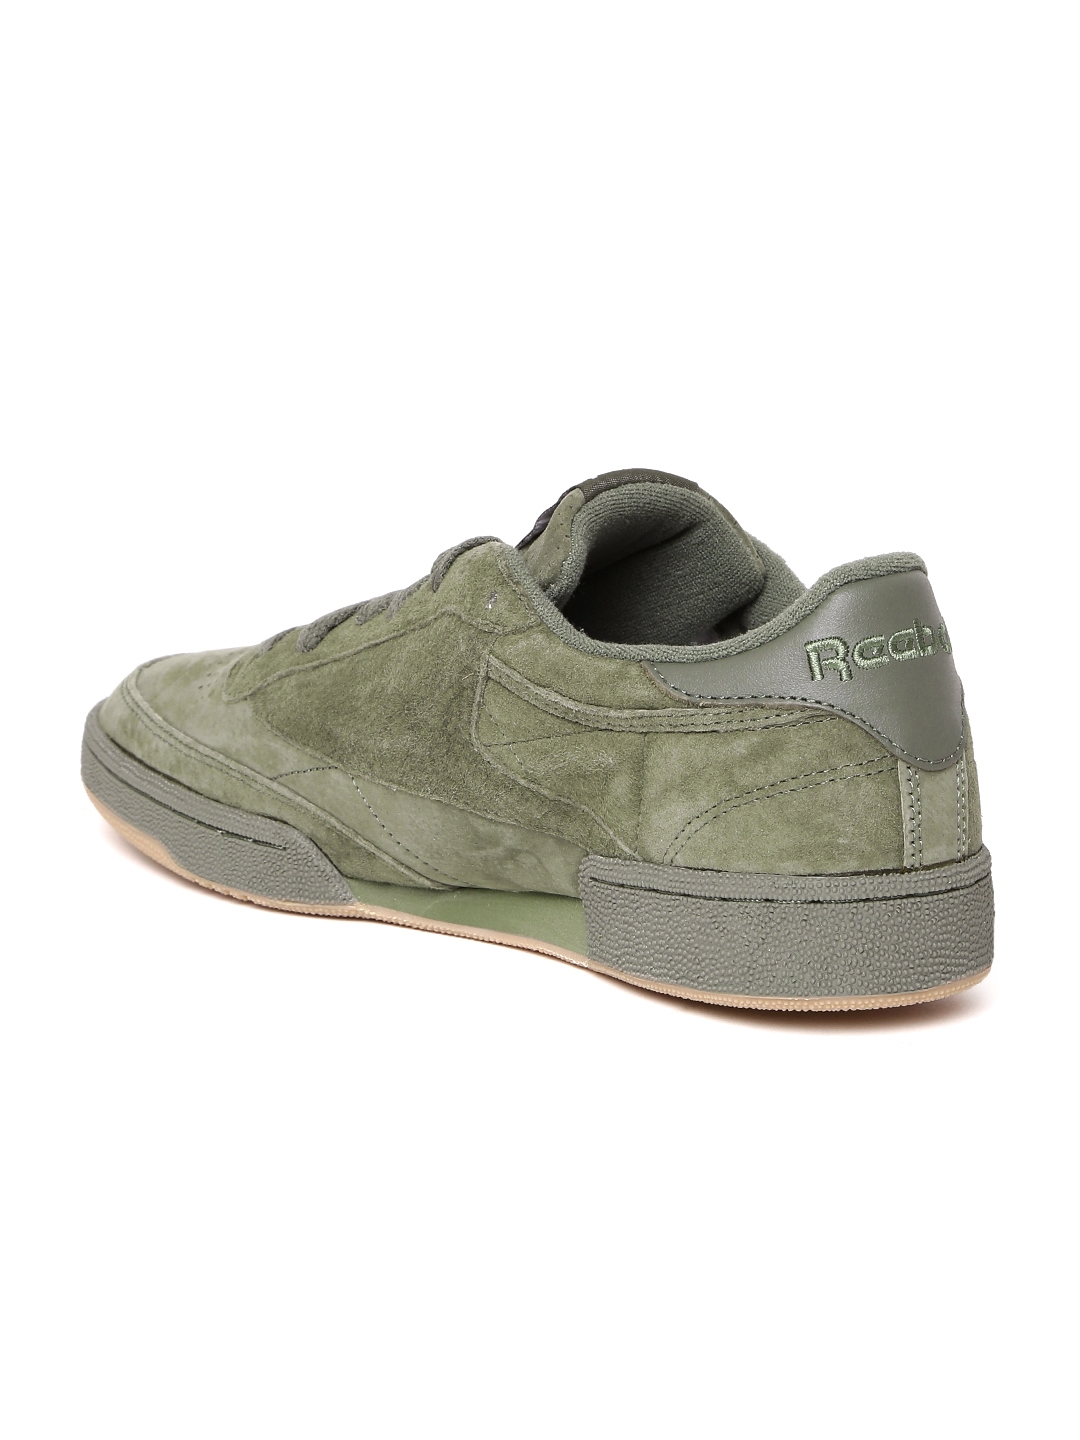 bb545420620 Buy Reebok Classic Men Olive Green CLUB C 85 SG Suede Sneakers ...